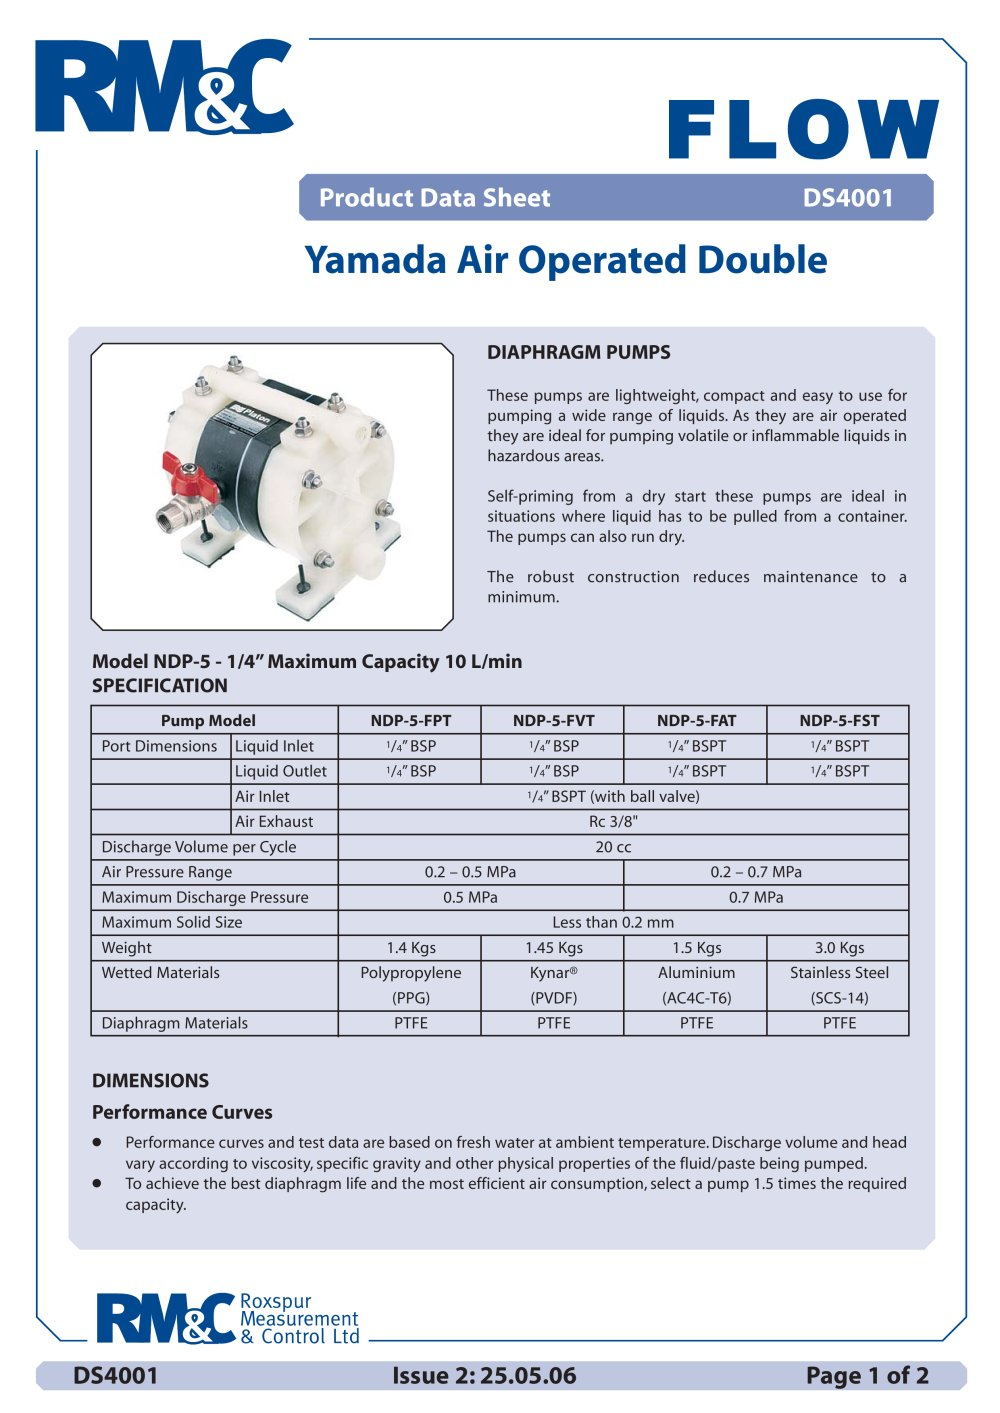 Yamada air operated double diaphragm pump roxspur measurement yamada air operated double diaphragm pump 1 2 pages ccuart Images